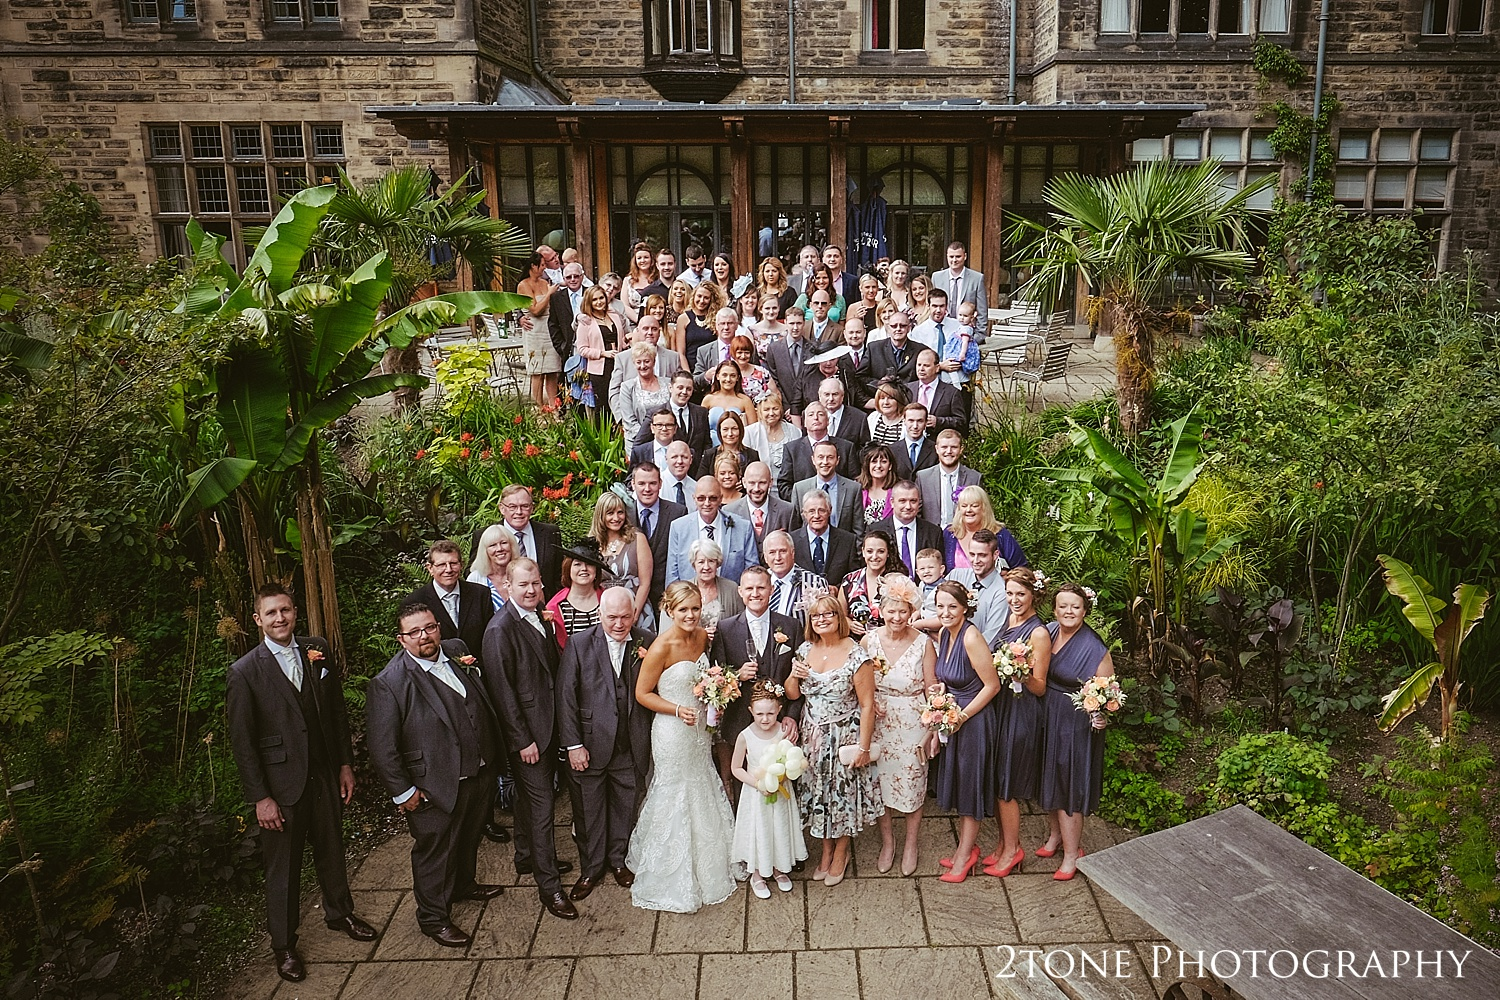 The group shot at Jesmond Dene House in Newcastle by 2tone Photography www.2tonephotography.co.uk